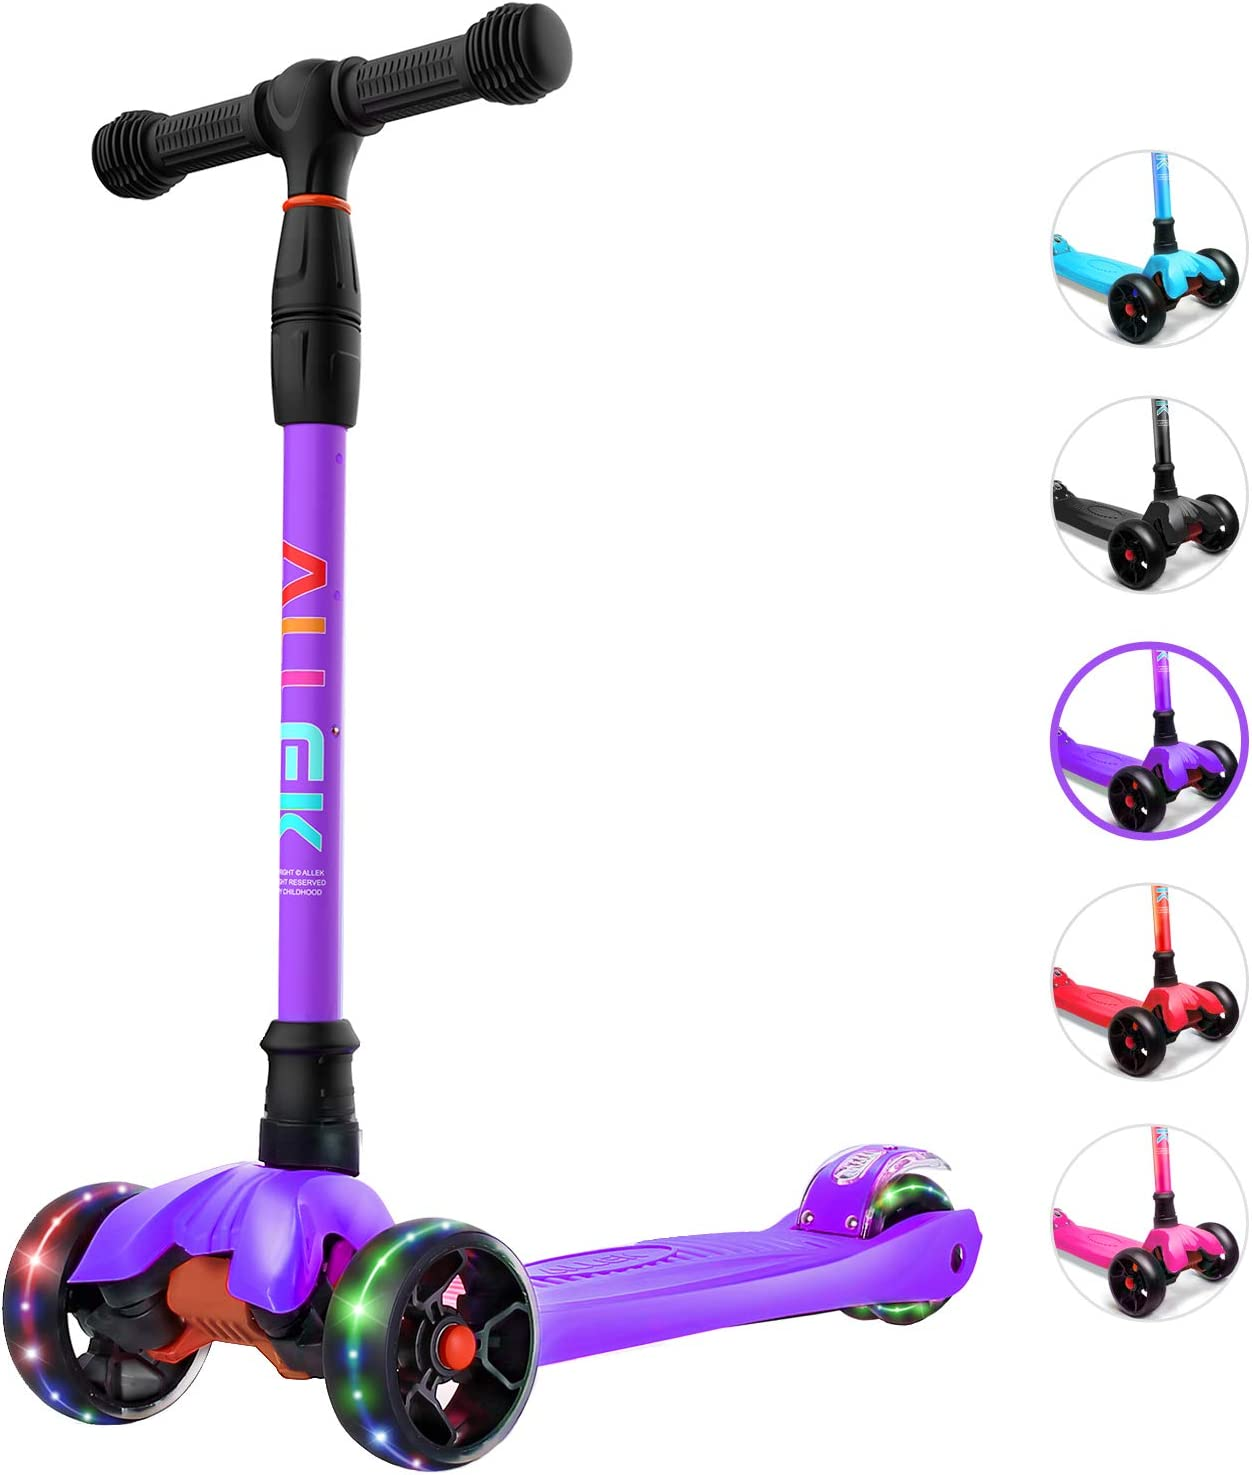 Allek Kick Scooter B02 Direct sale of New Free Shipping manufacturer Lean 'N Glide Extra PU Wide with